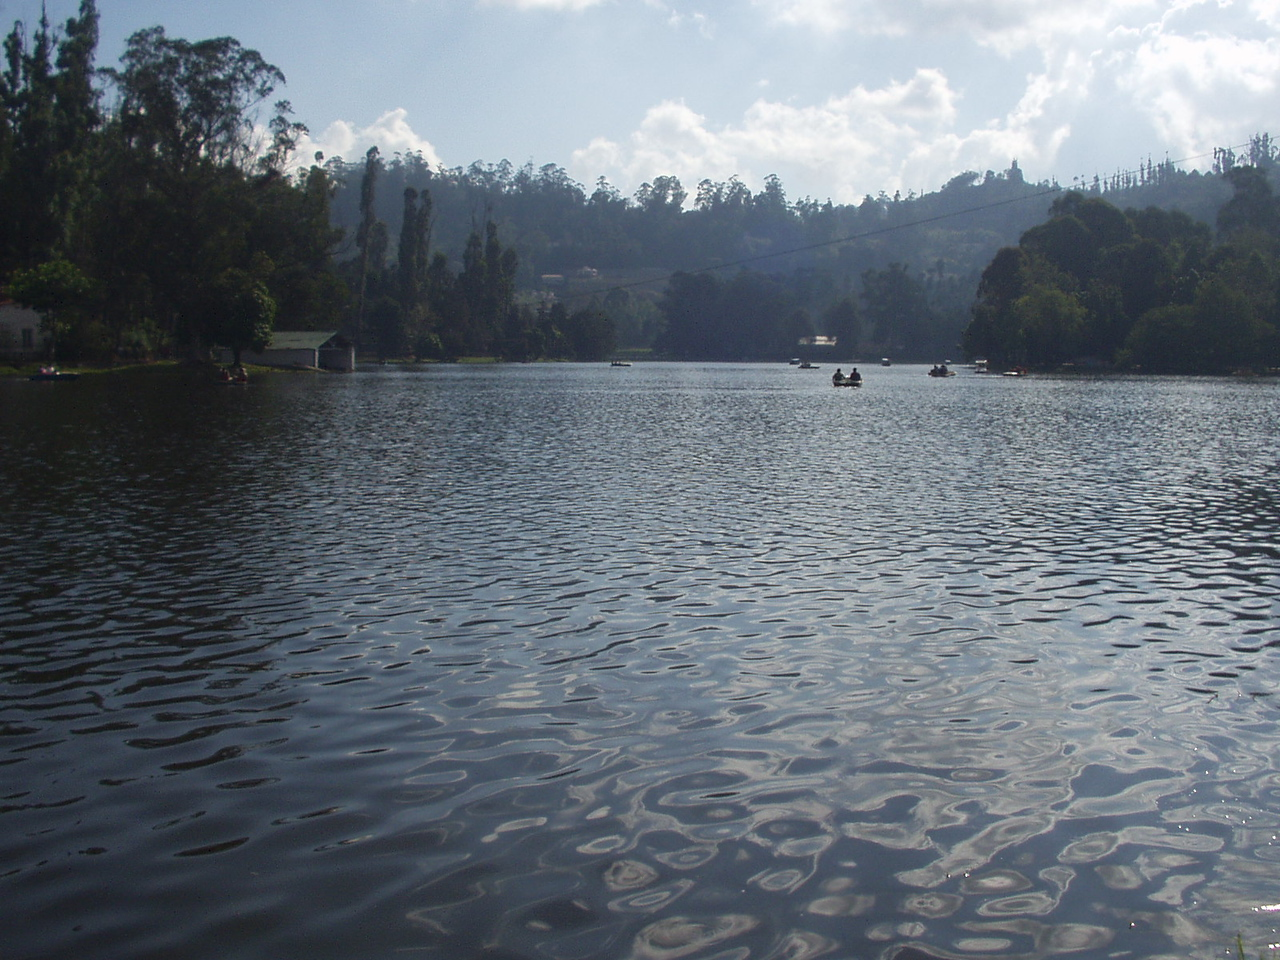 The (artificial) lake